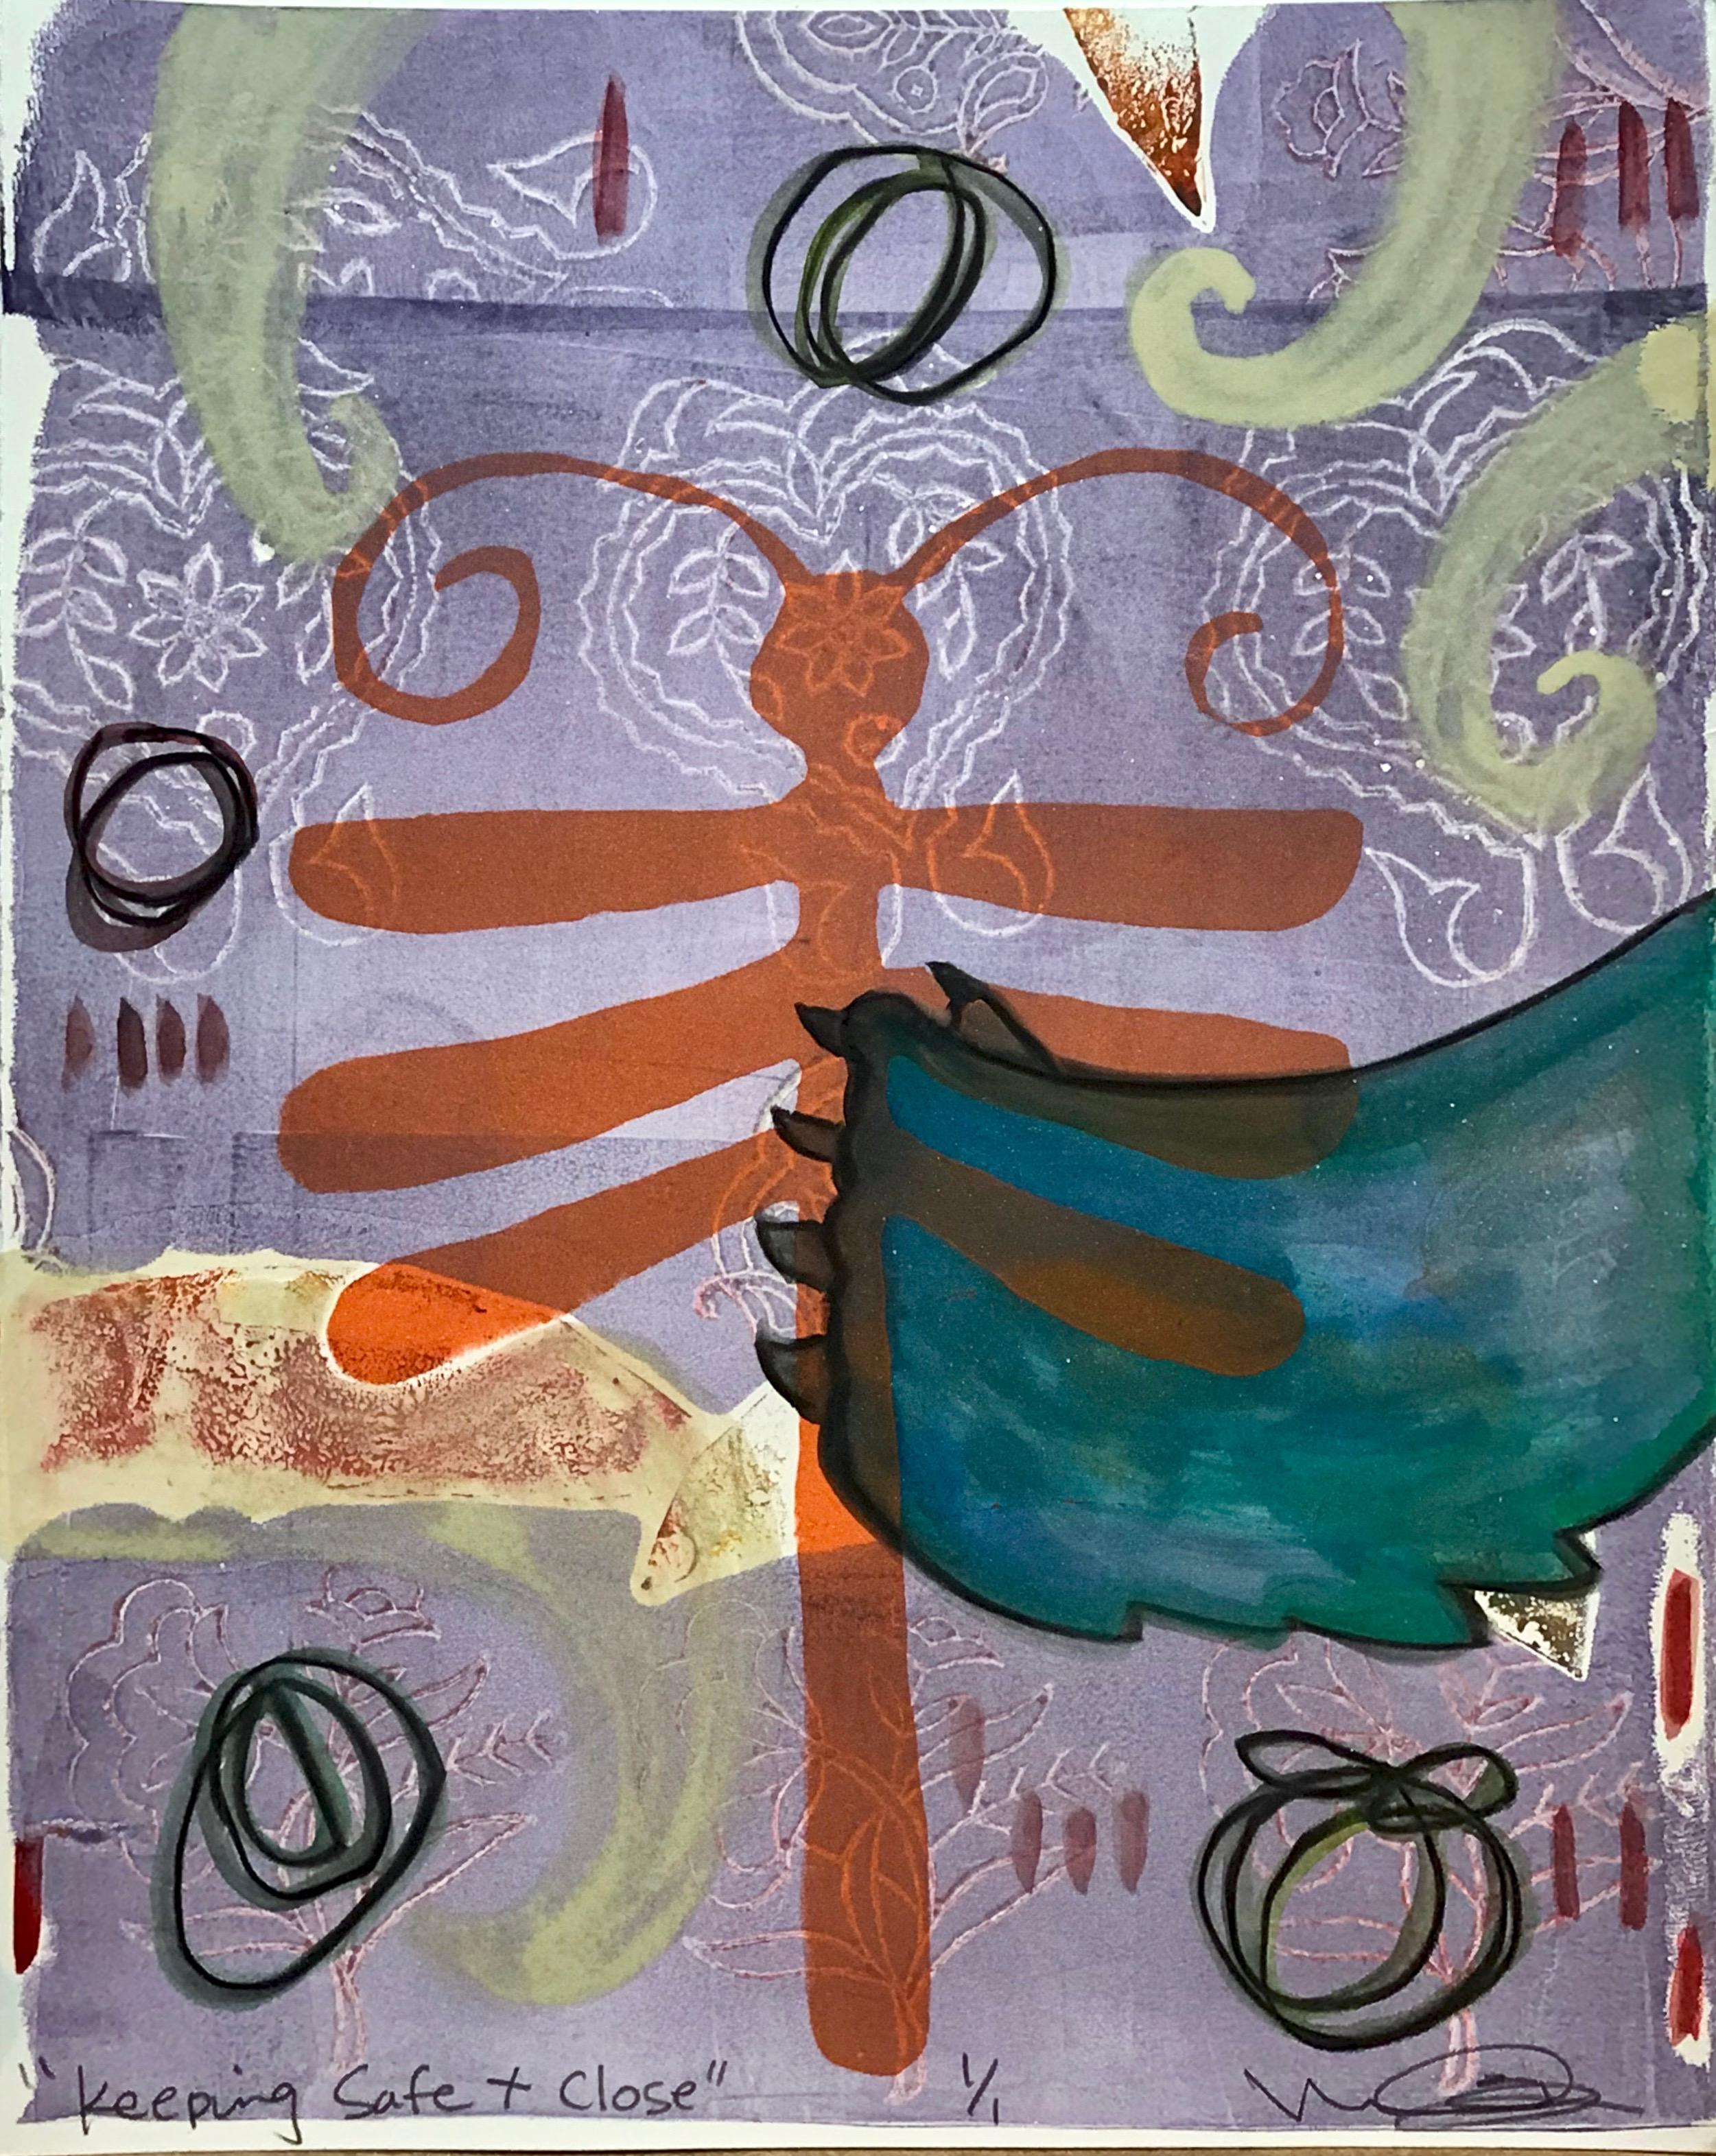 Keeping Safe + Close, mixed media monotype on paper. purple,orange, dragonfly